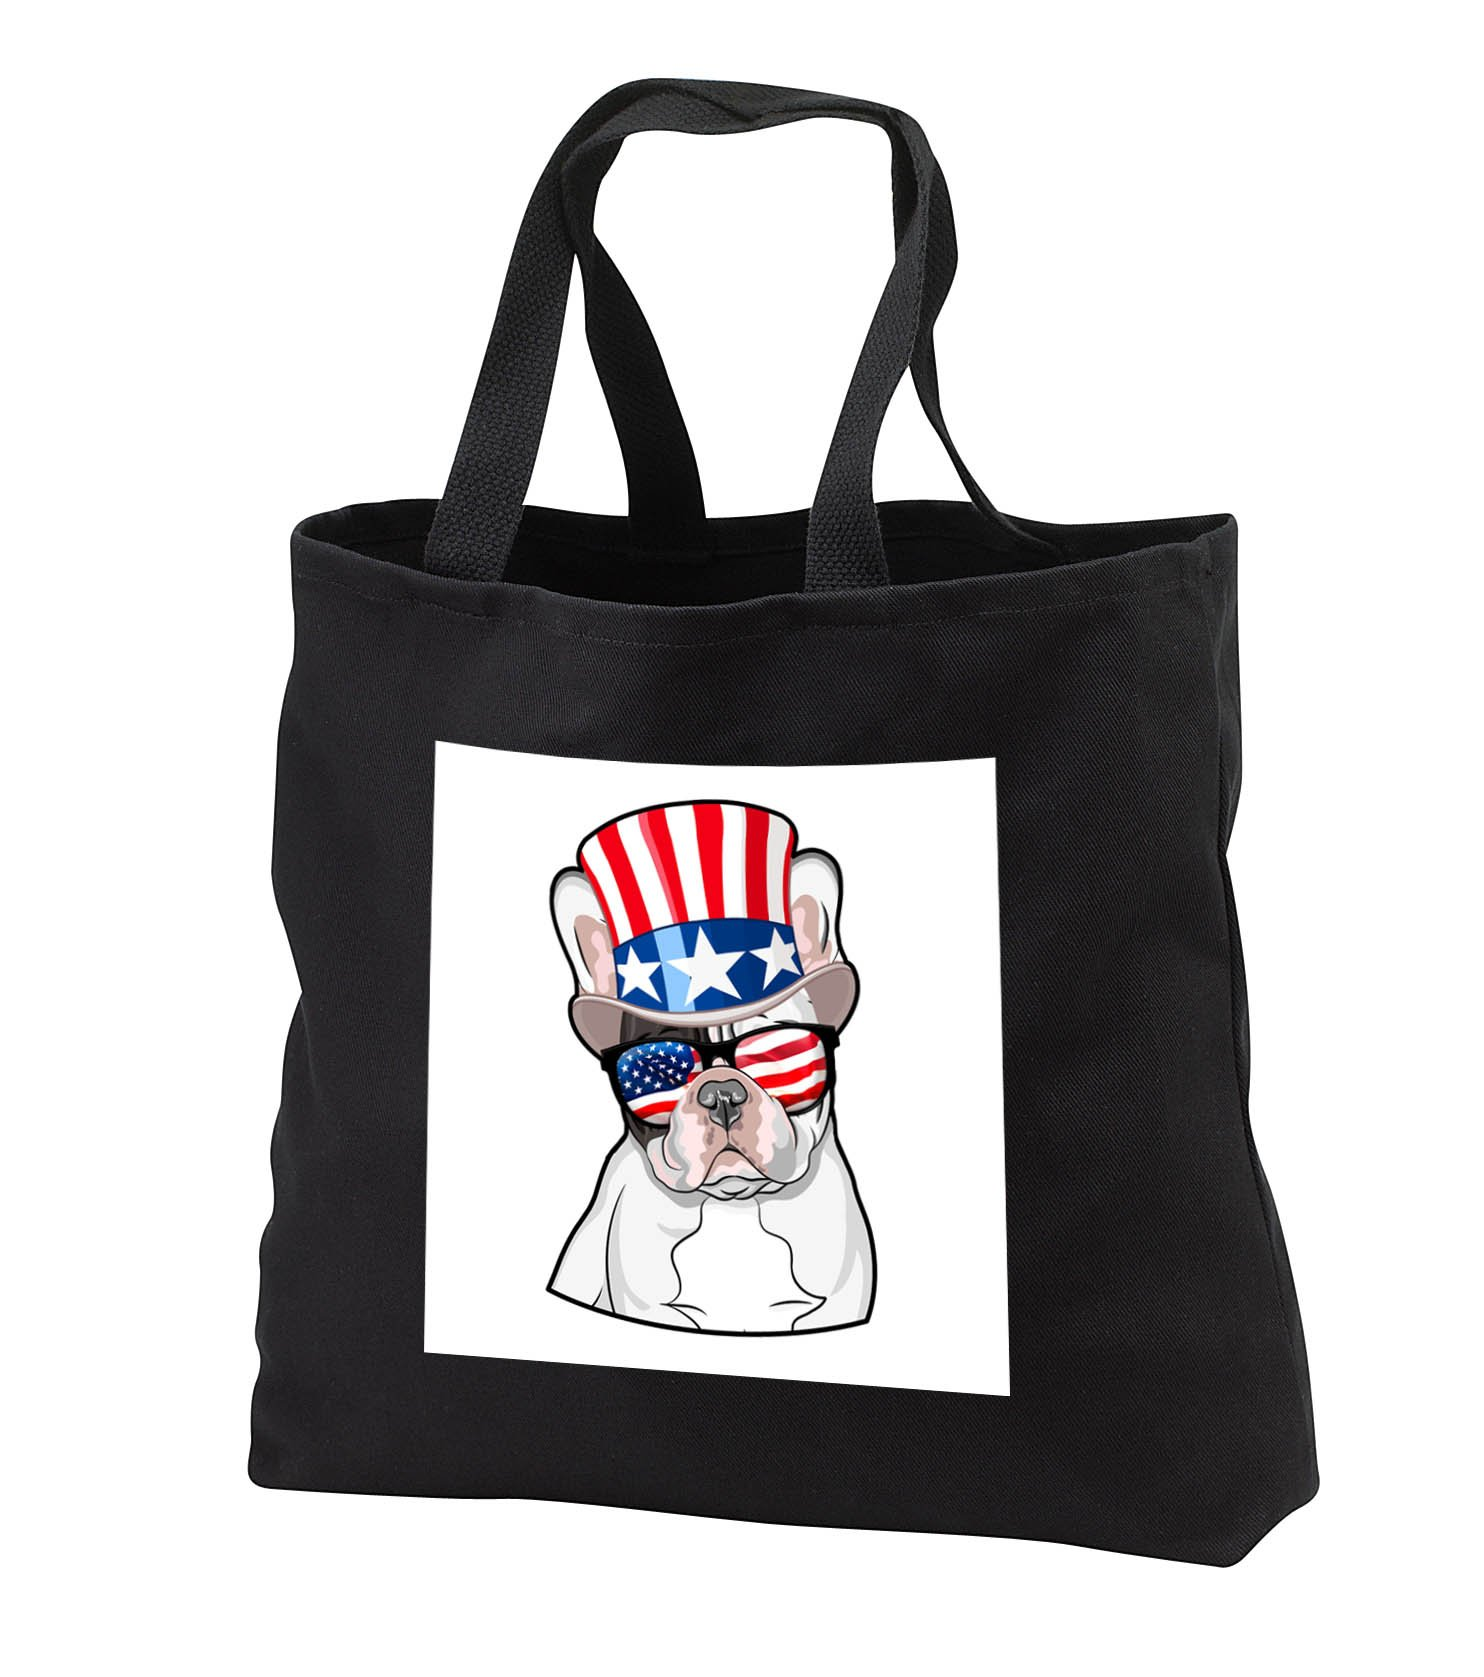 Patriotic American Dogs - French Bulldog With American Flag Sunglasses and Top hat - Tote Bags - Black Tote Bag JUMBO 20w x 15h x 5d (tb_282705_3)